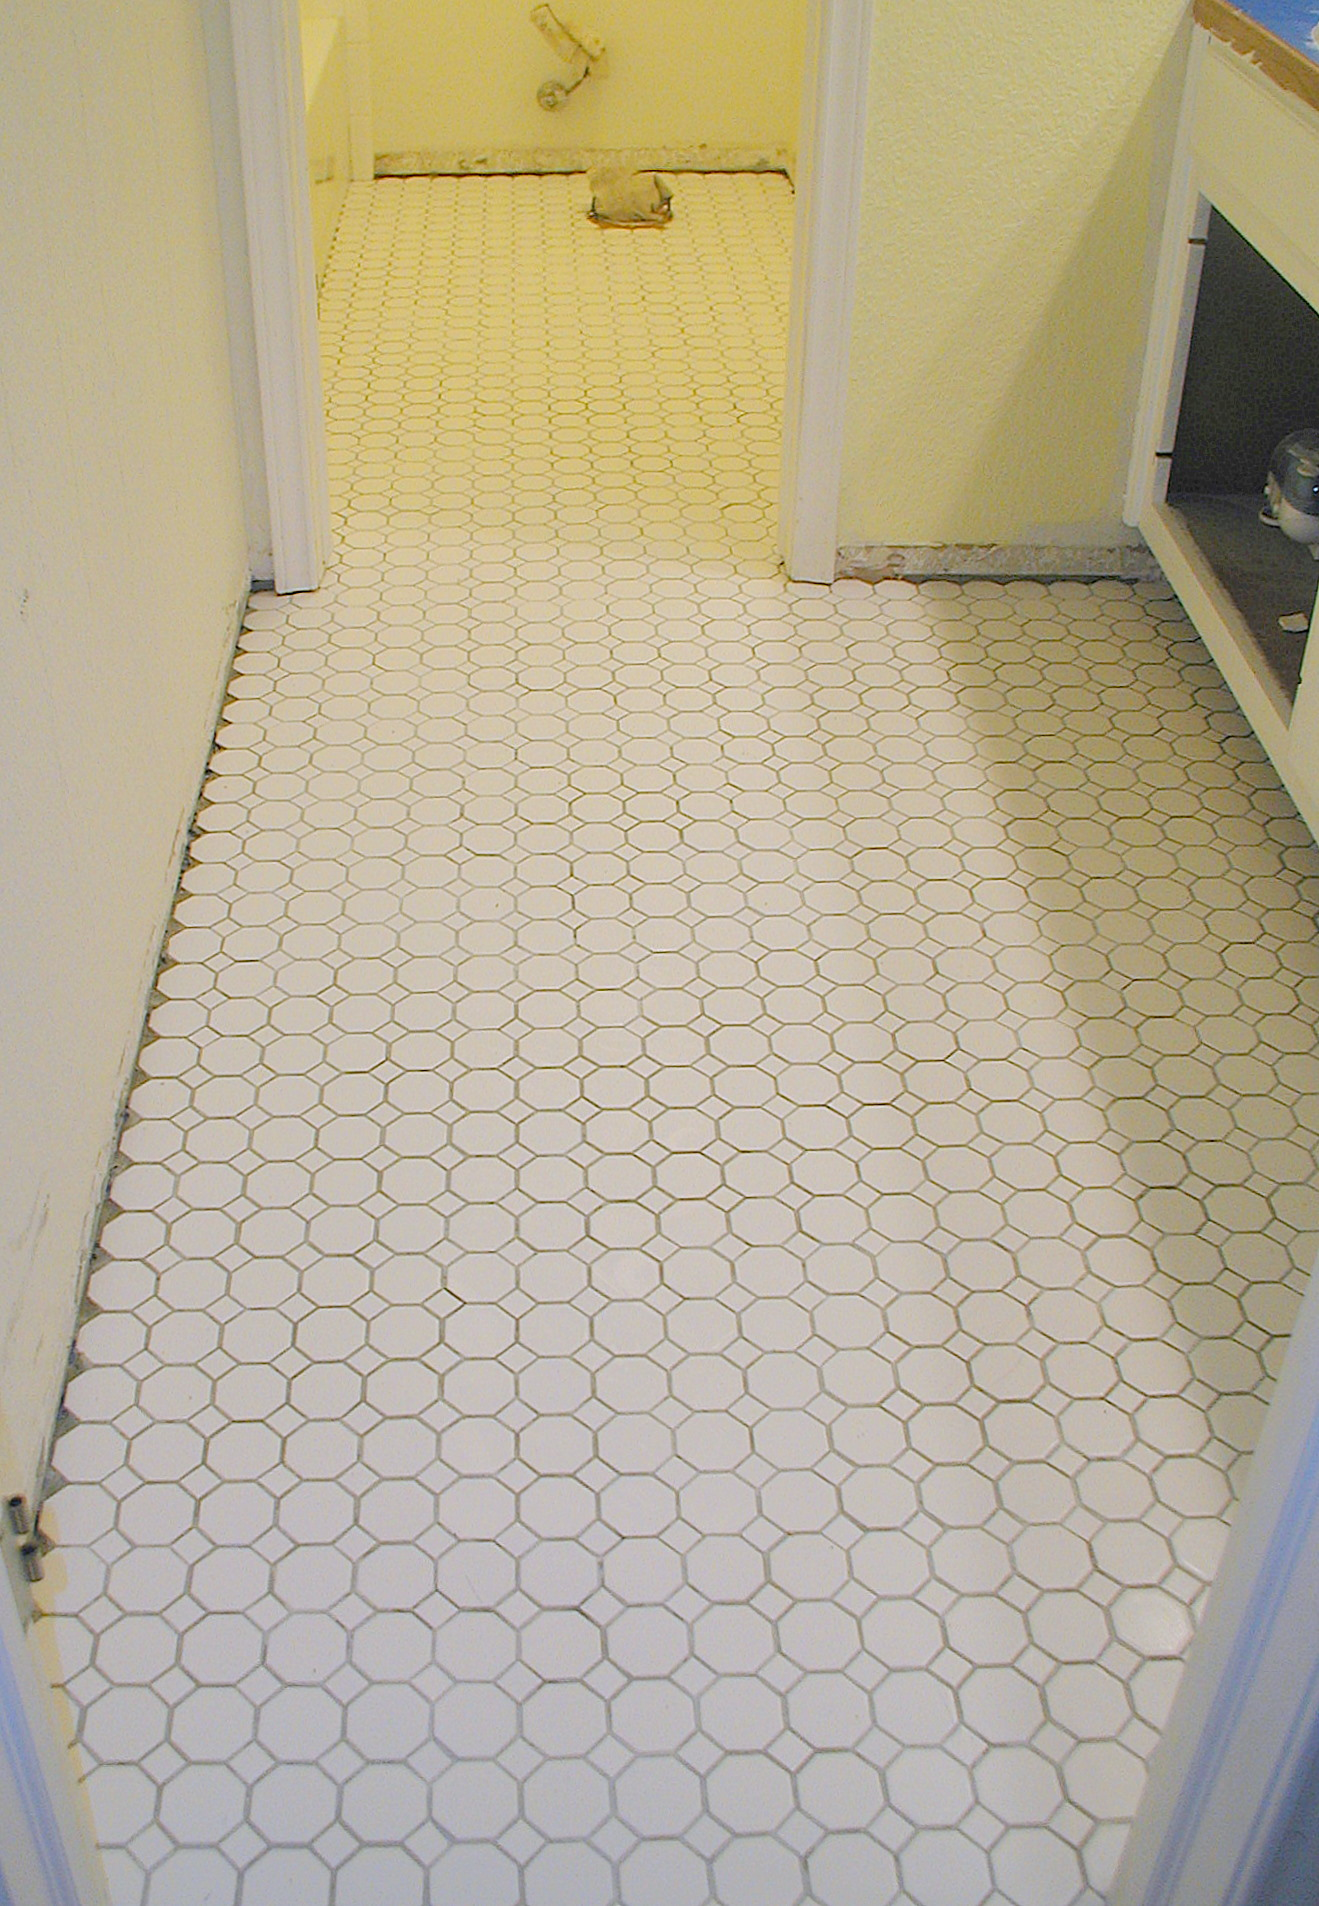 Book Of Octagon Tiles Bathroom Floor In Us By Sophia | eyagci.com